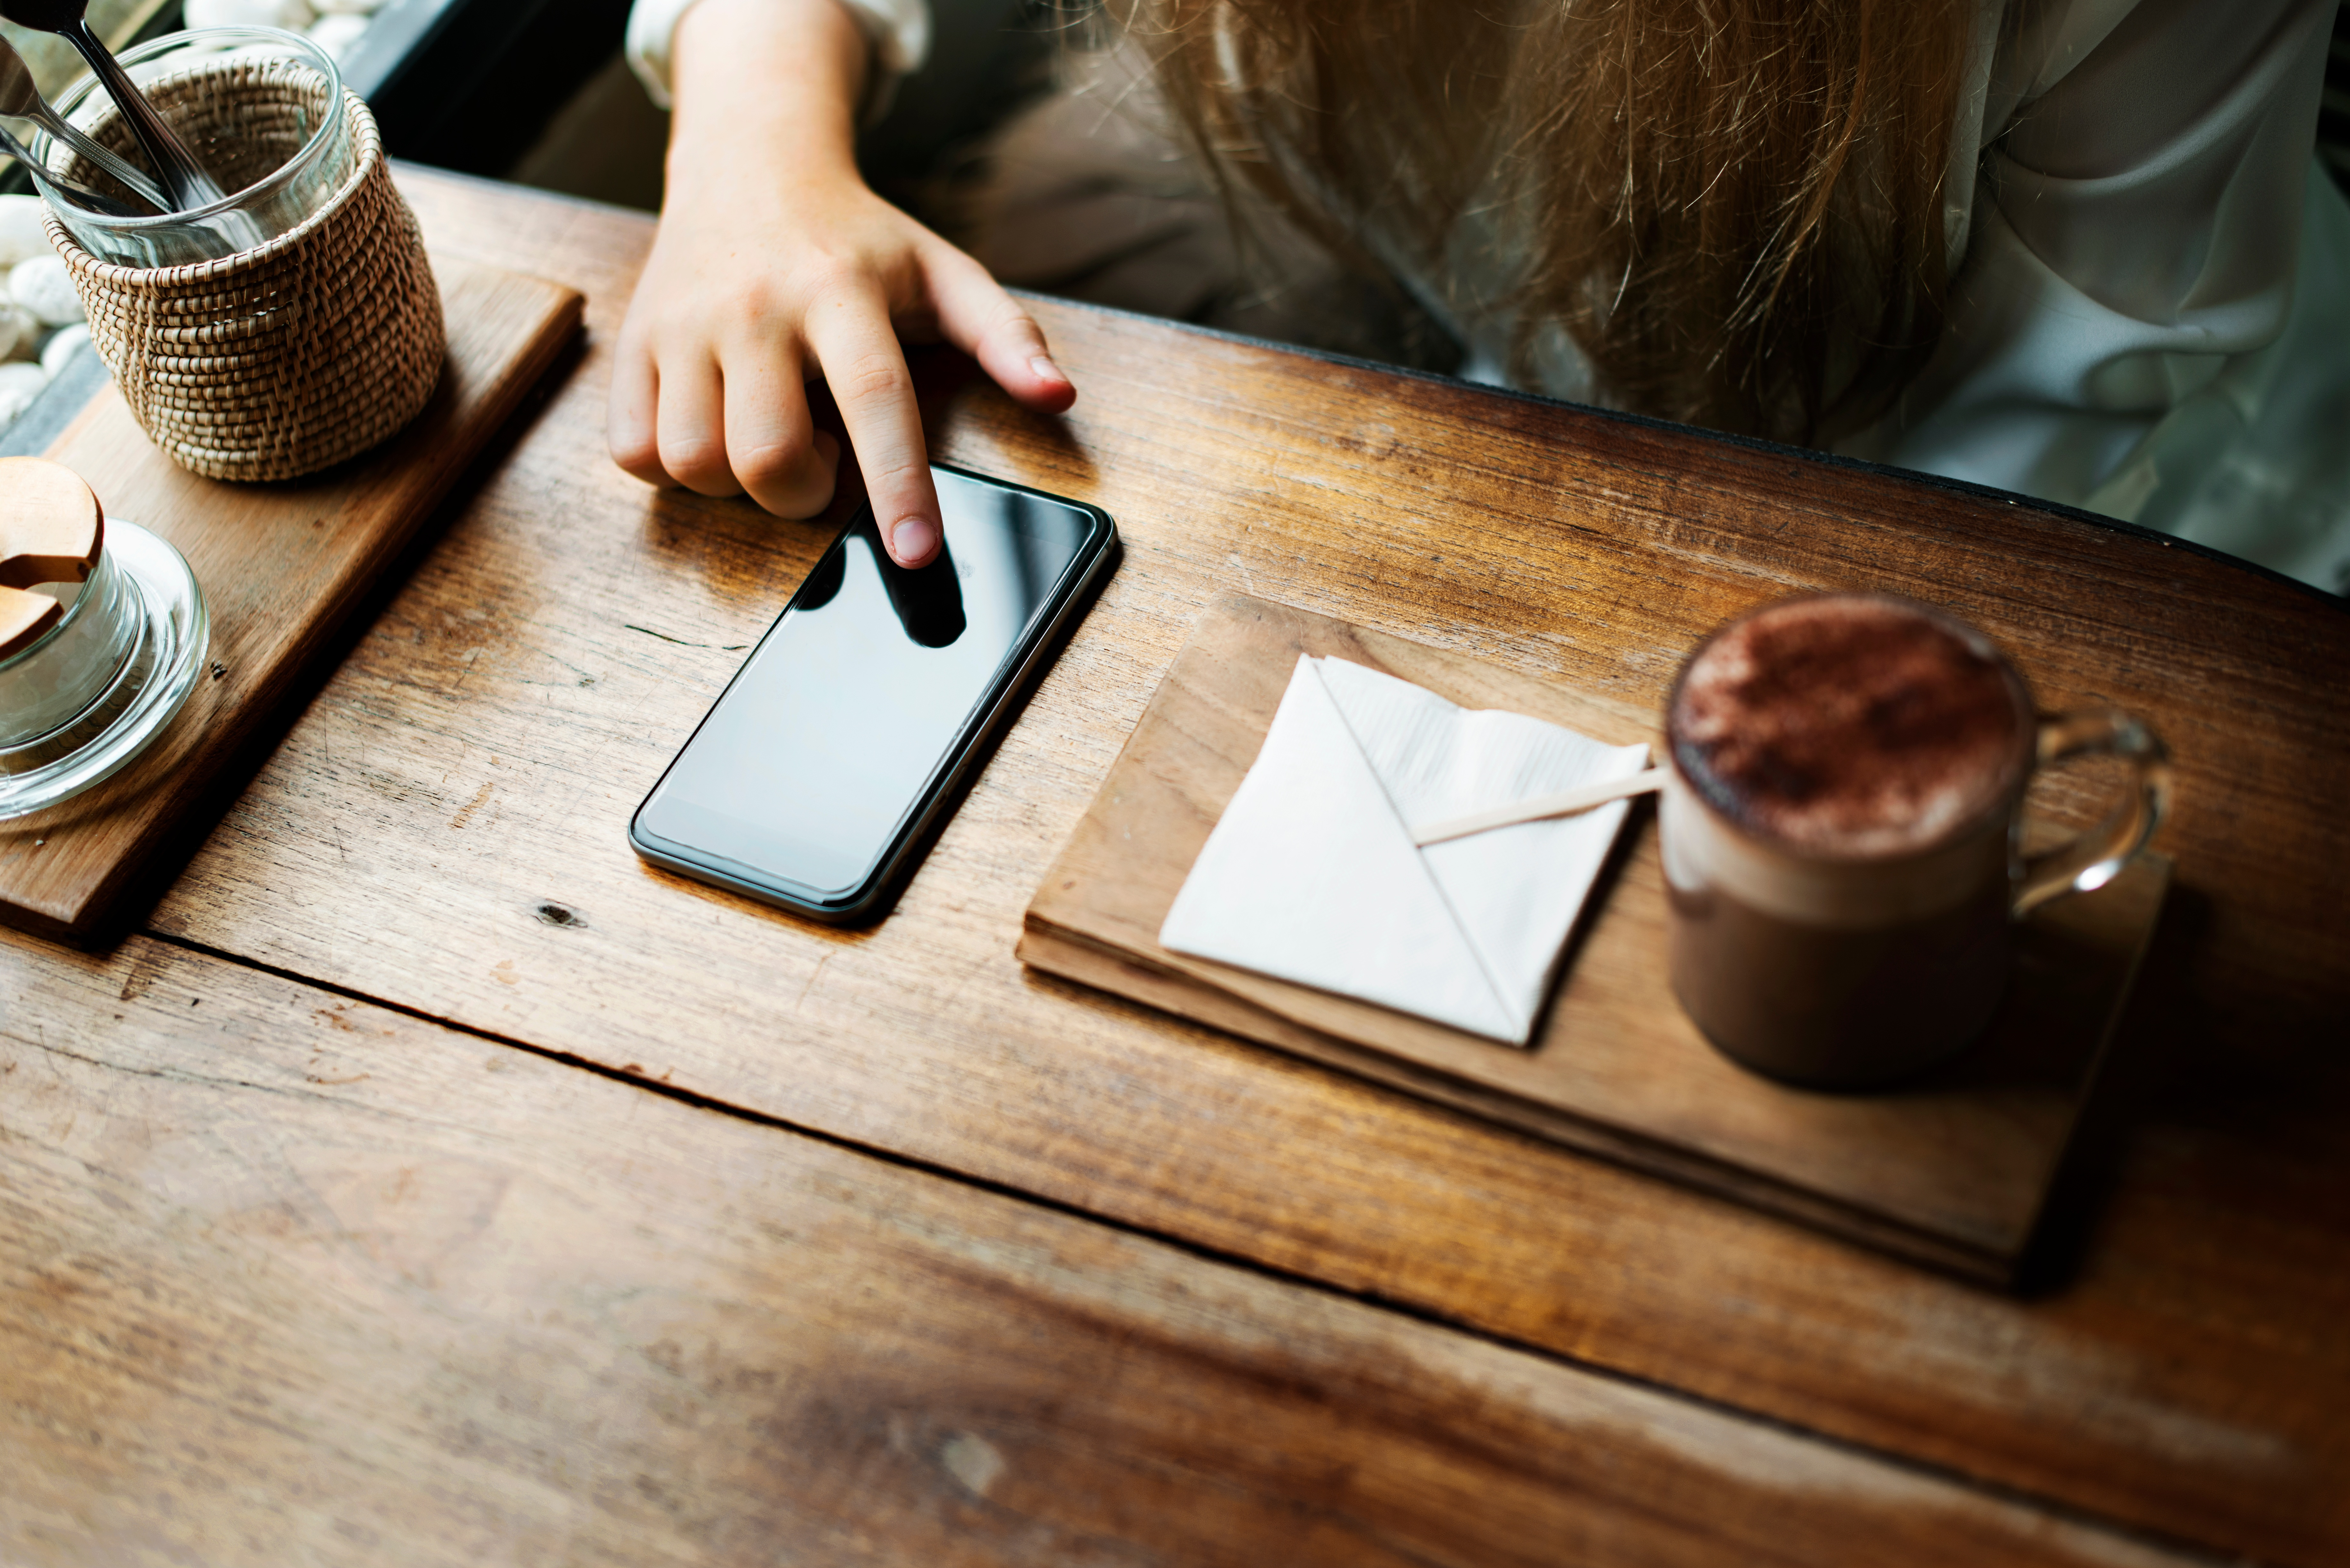 receiving-mobile-notifications-and-using-smartphone-at-coffee-shop